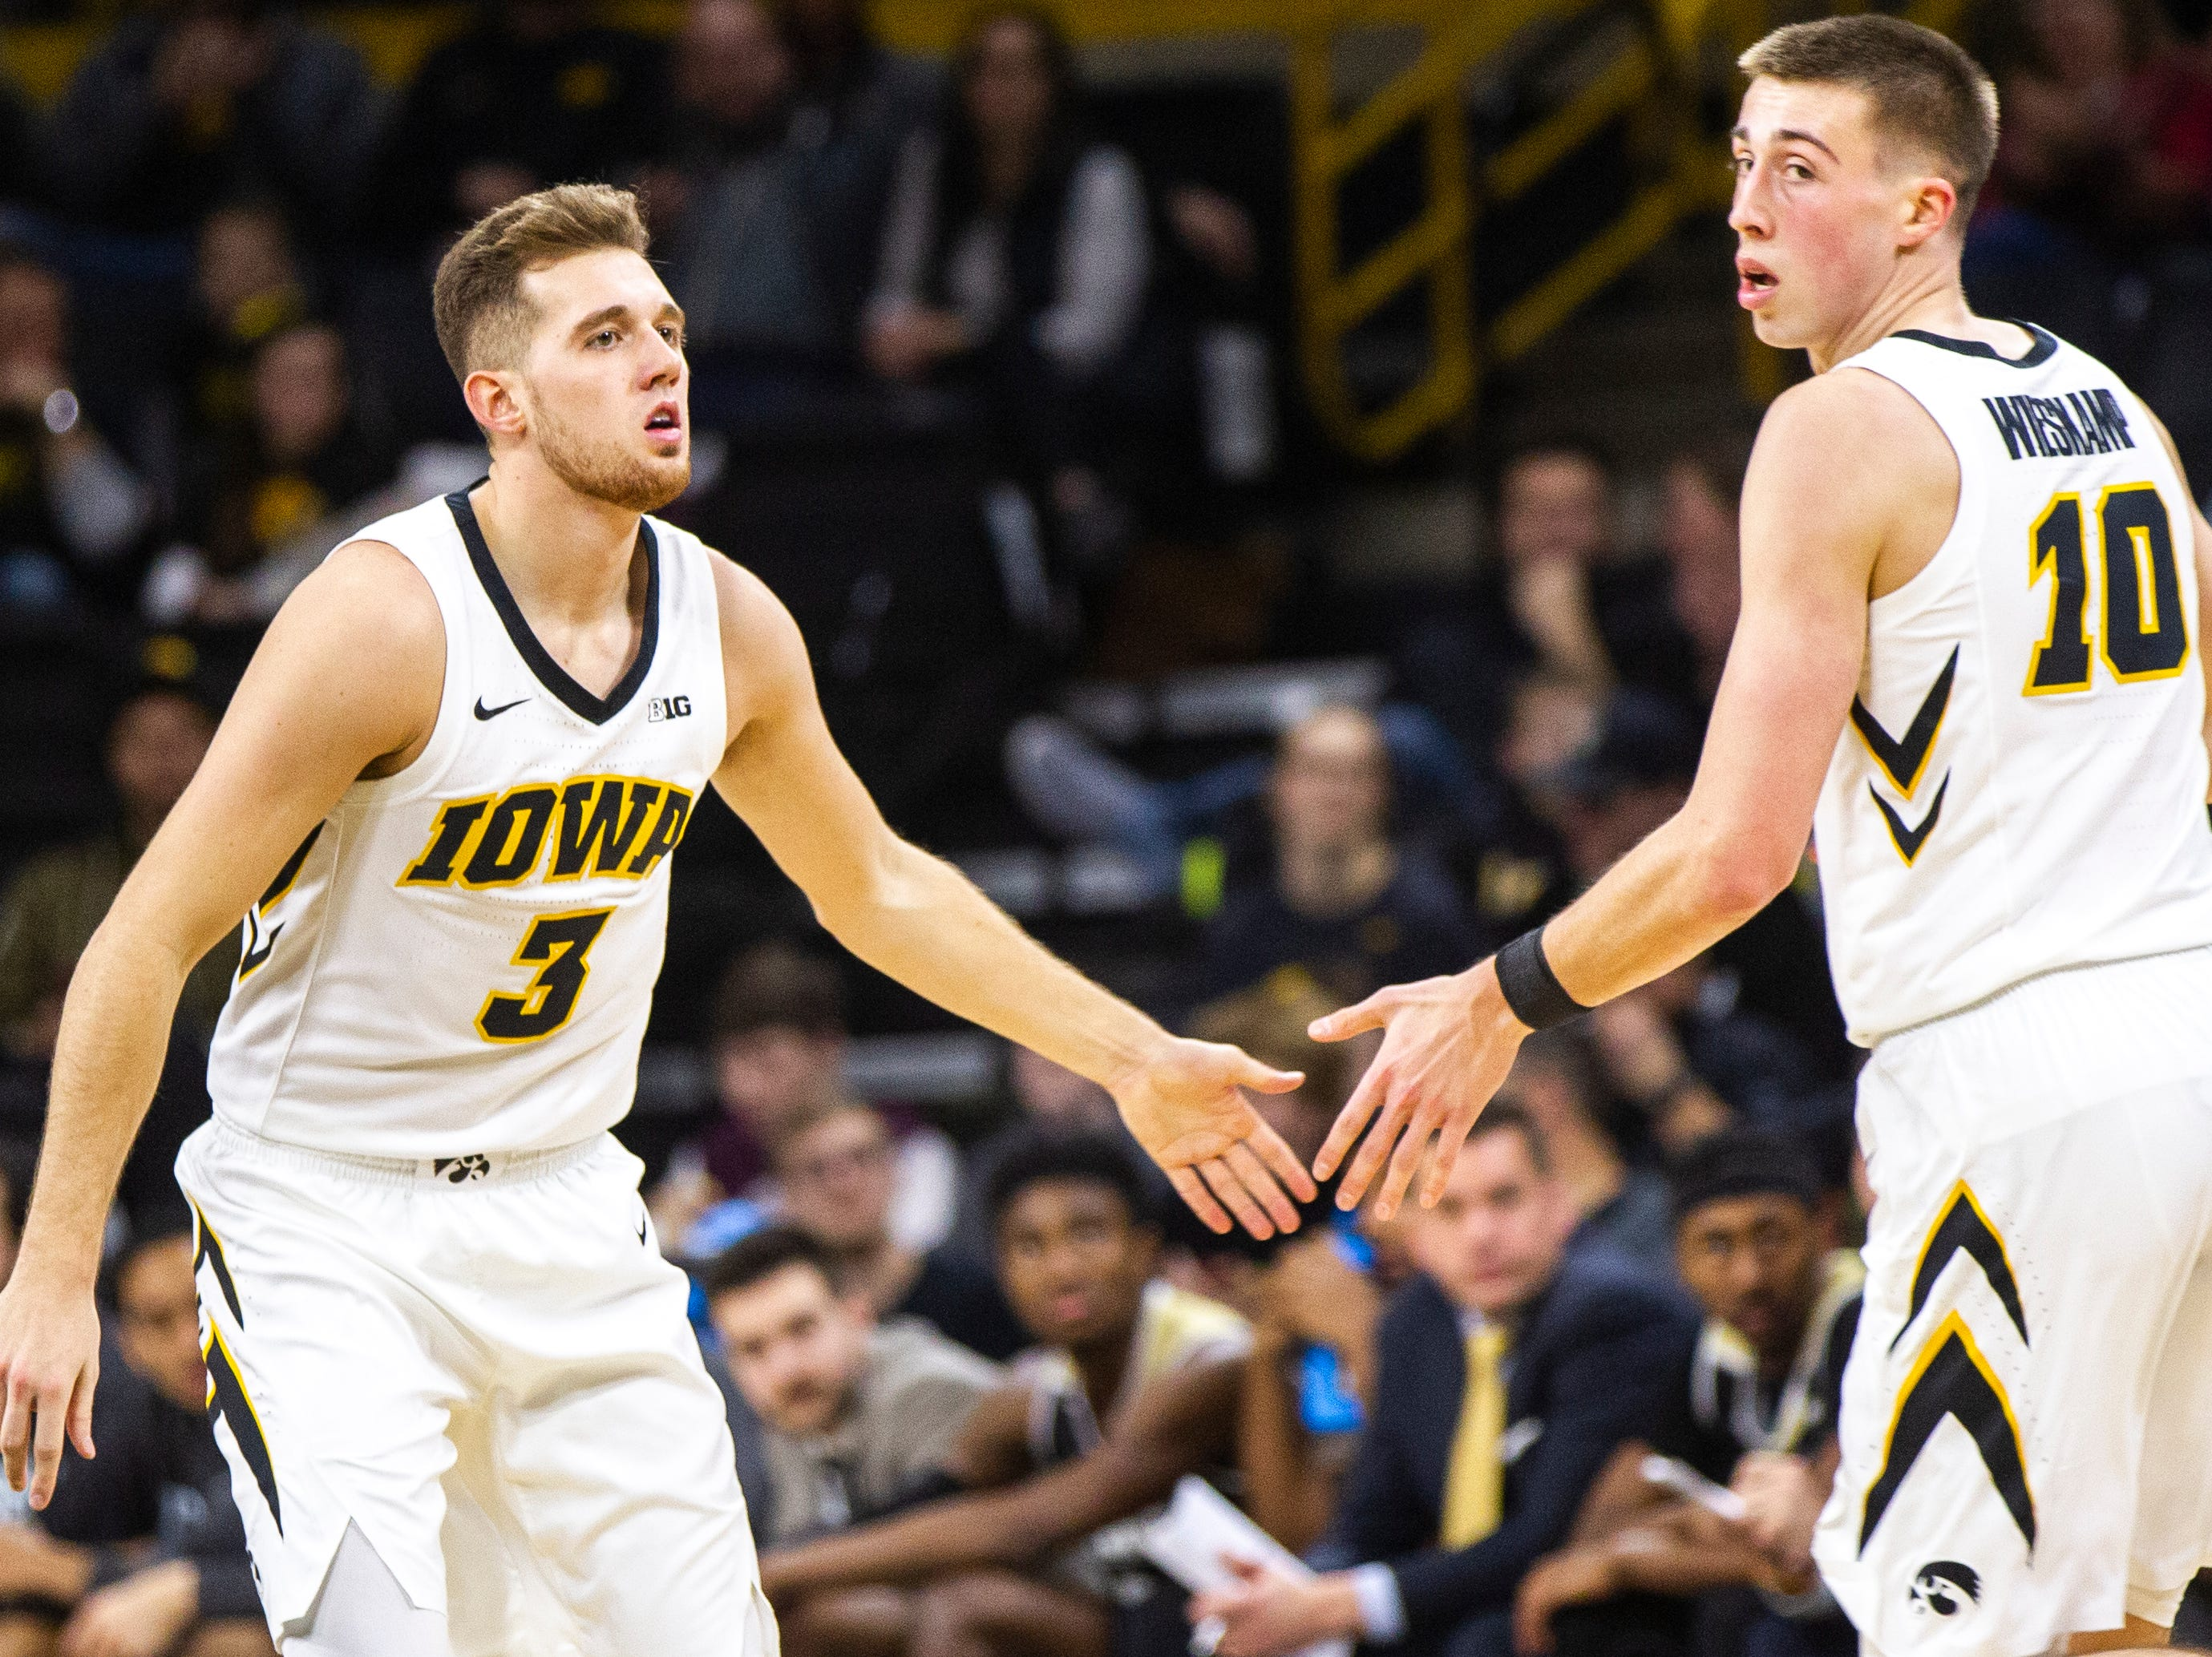 Iowa guard Jordan Bohannon (3) high-fives Iowa guard Joe Wieskamp (10) during a NCAA men's basketball game on Saturday, Dec. 29, 2018, at Carver-Hawkeye Arena in Iowa City.